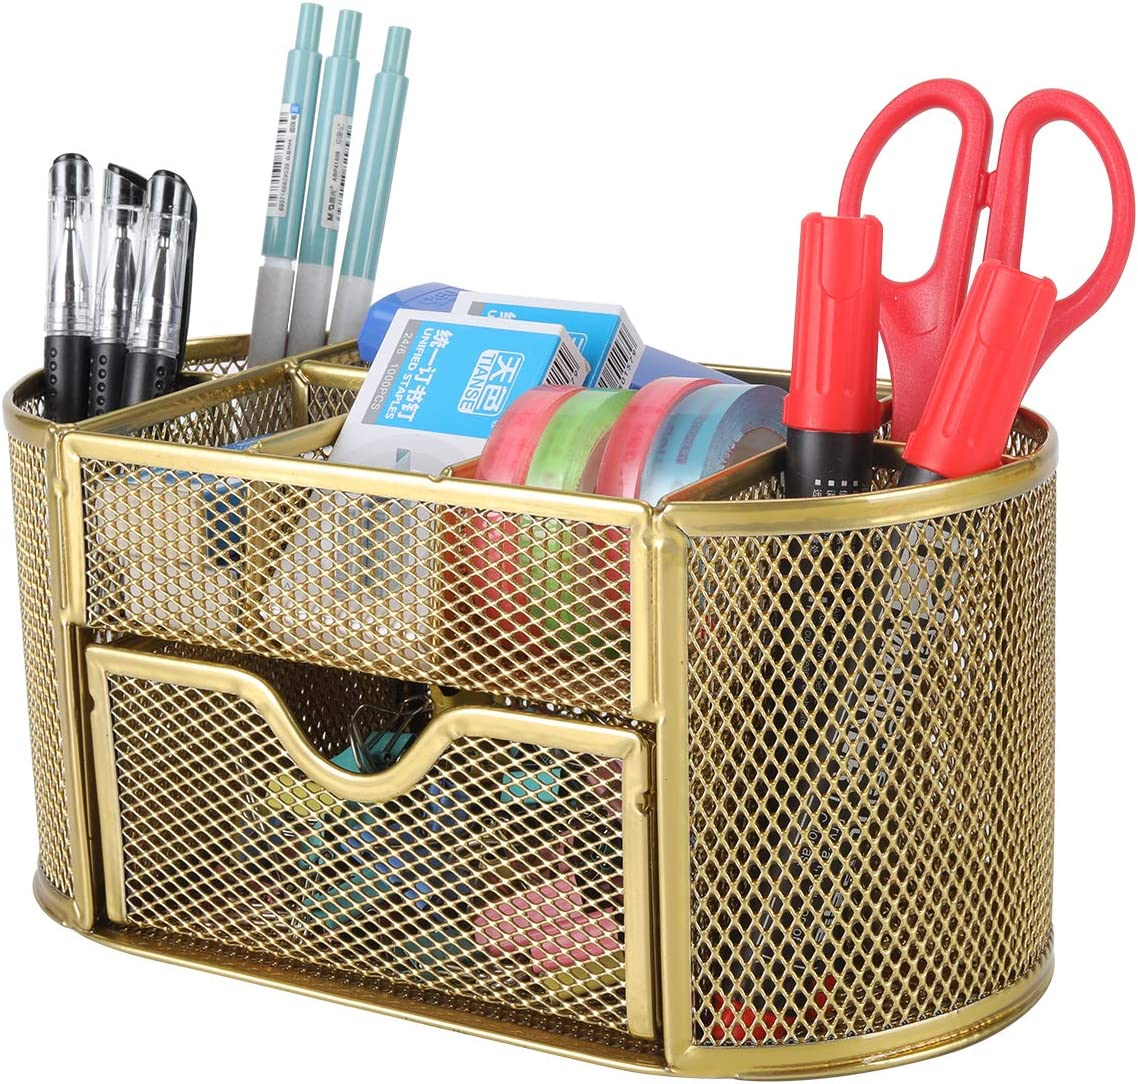 PAG Office Supplies Mesh Desk Organizer Pencil Holder Pen Cup Accessories Storage Caddy with Drawer for Women and Girls, 9 Compartments, GoldGold